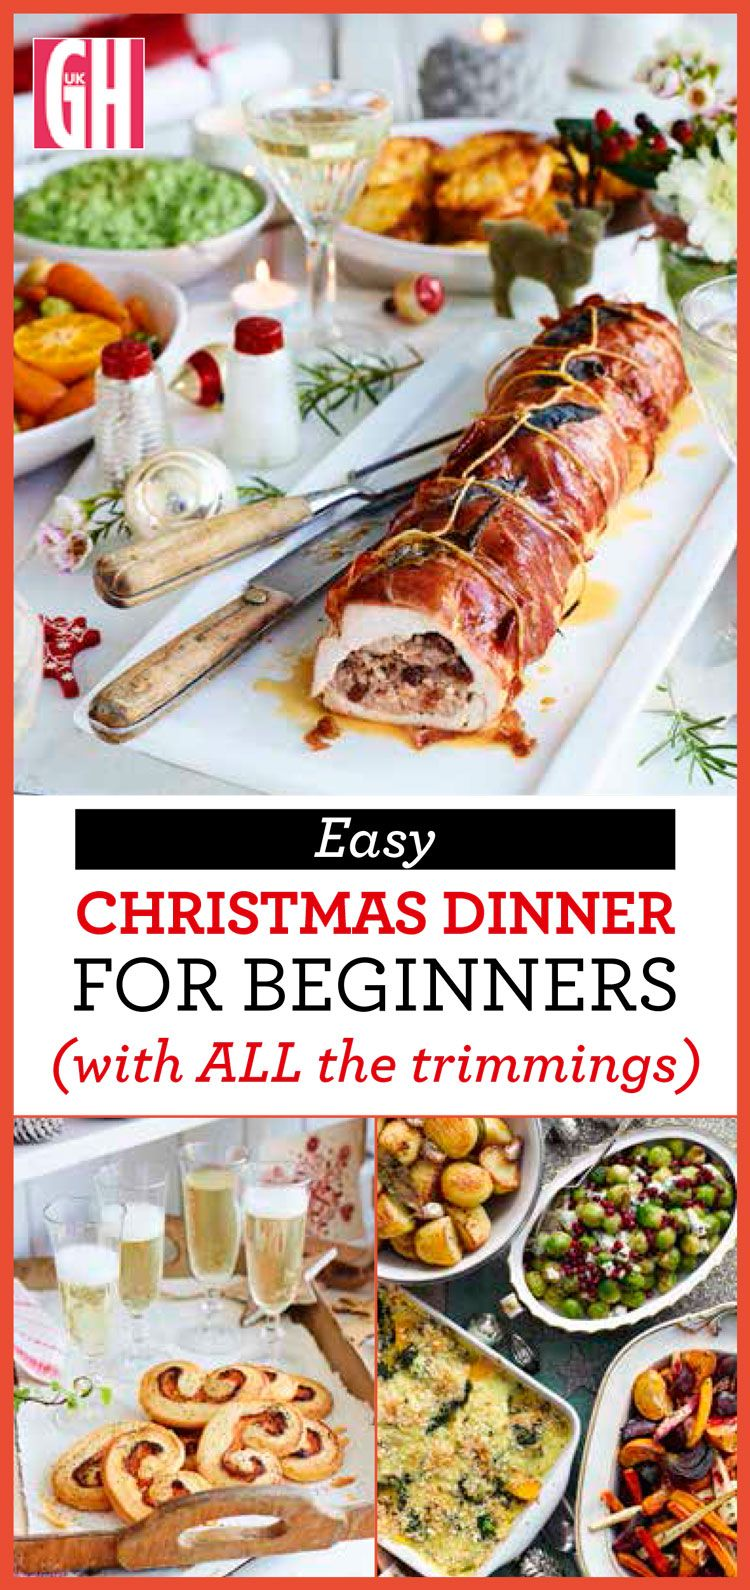 how to cook christmas dinner from an easy xmas starter recipe to turkey breast and all - Easy Christmas Dinner Recipes